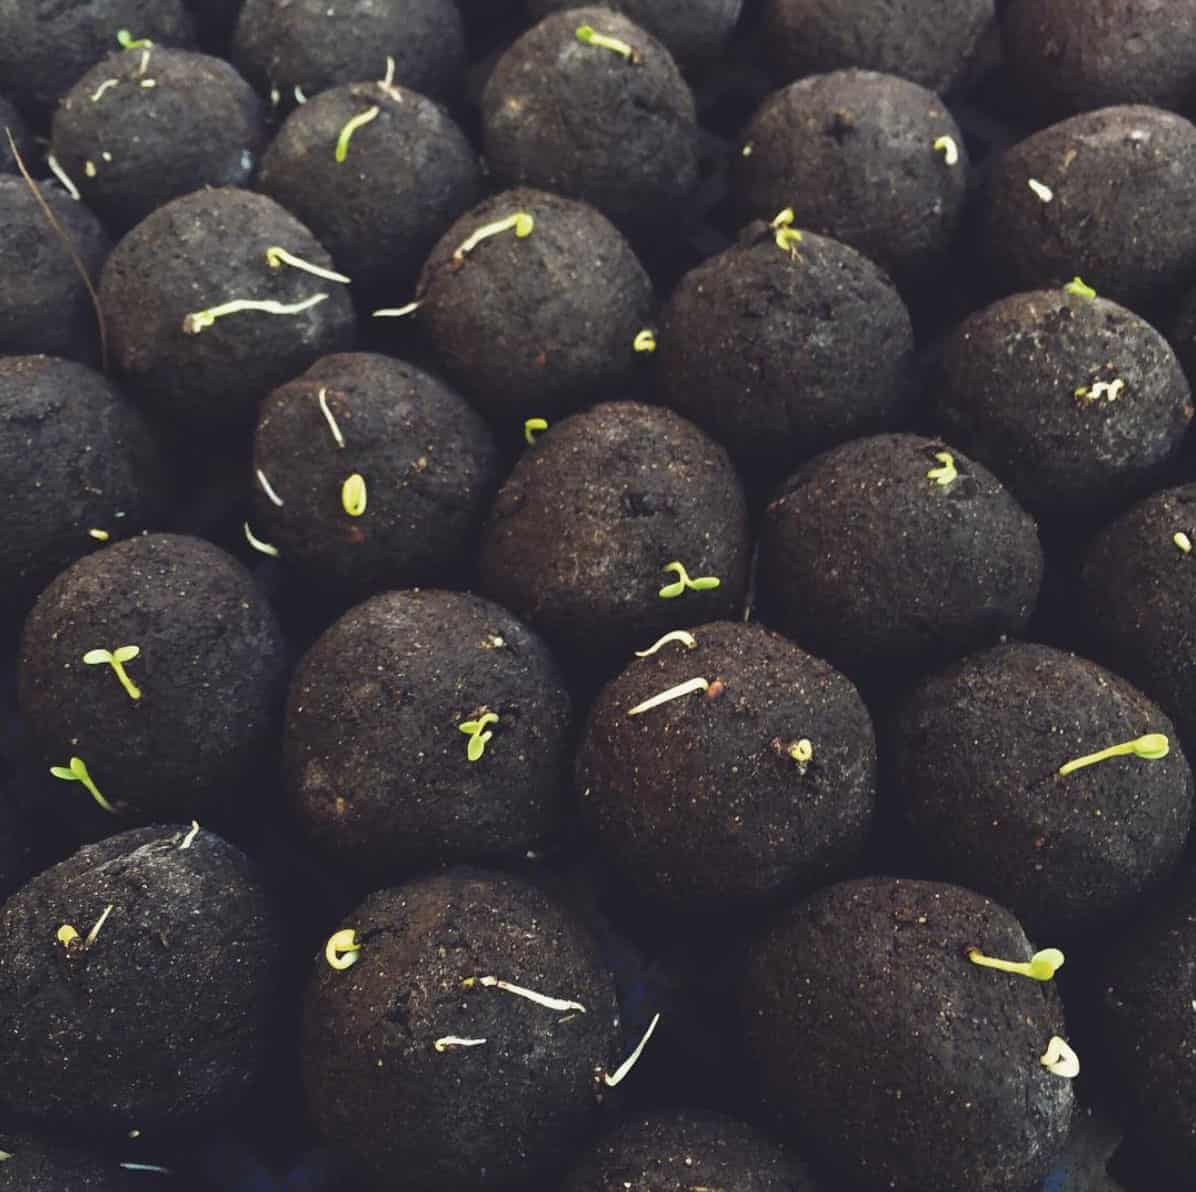 Seedball, seed balls, seedballs paving the way to reforestation - Virtuul News